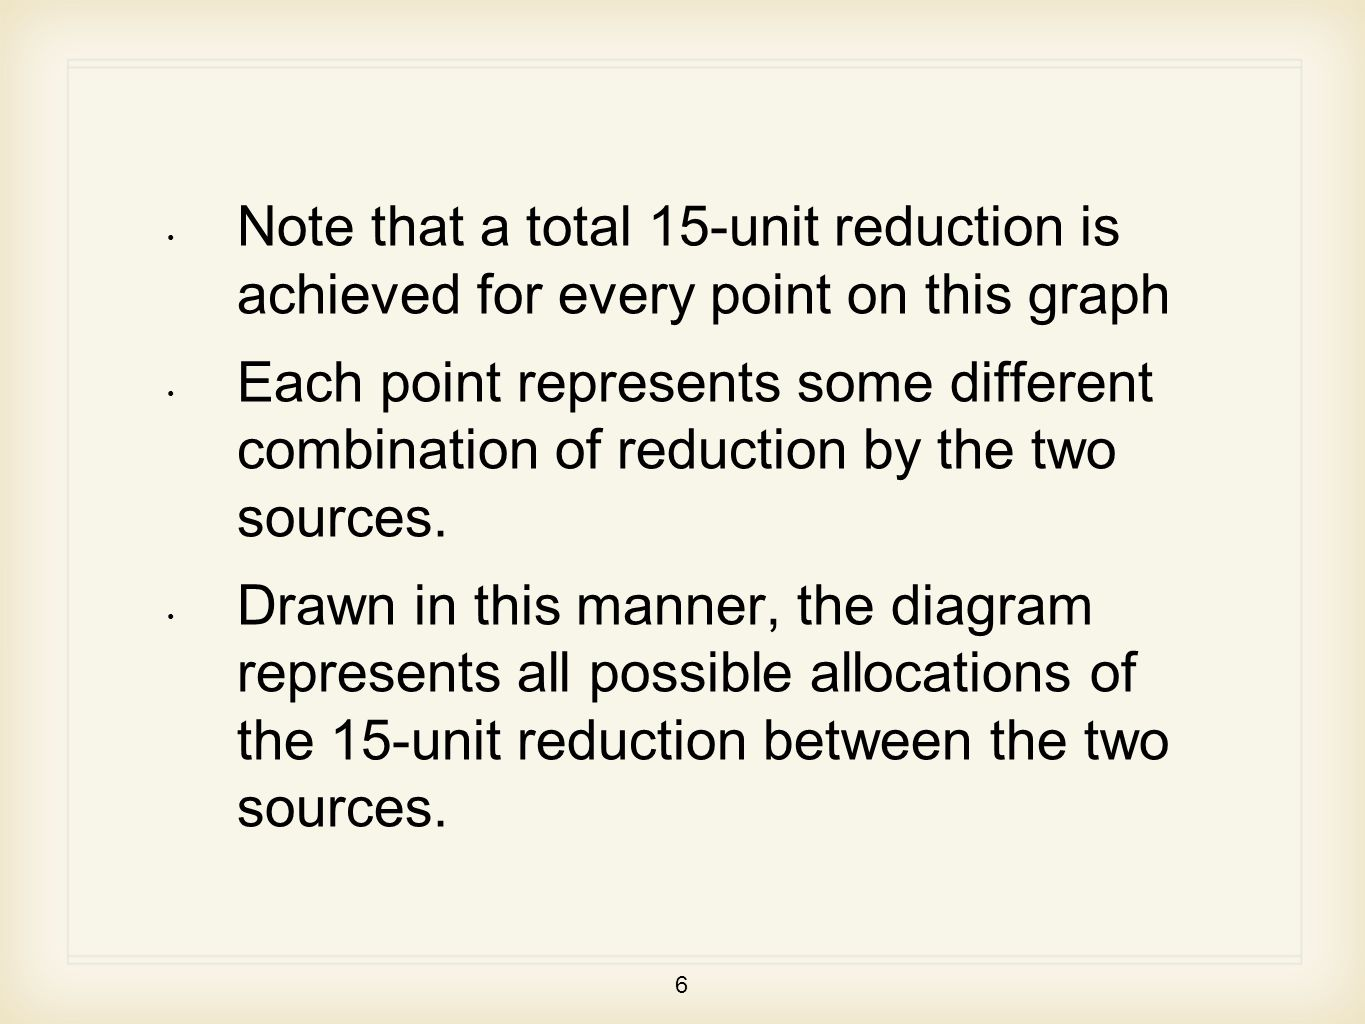 6 Note that a total 15-unit reduction is achieved for every point on this graph Each point represents some different combination of reduction by the two sources.